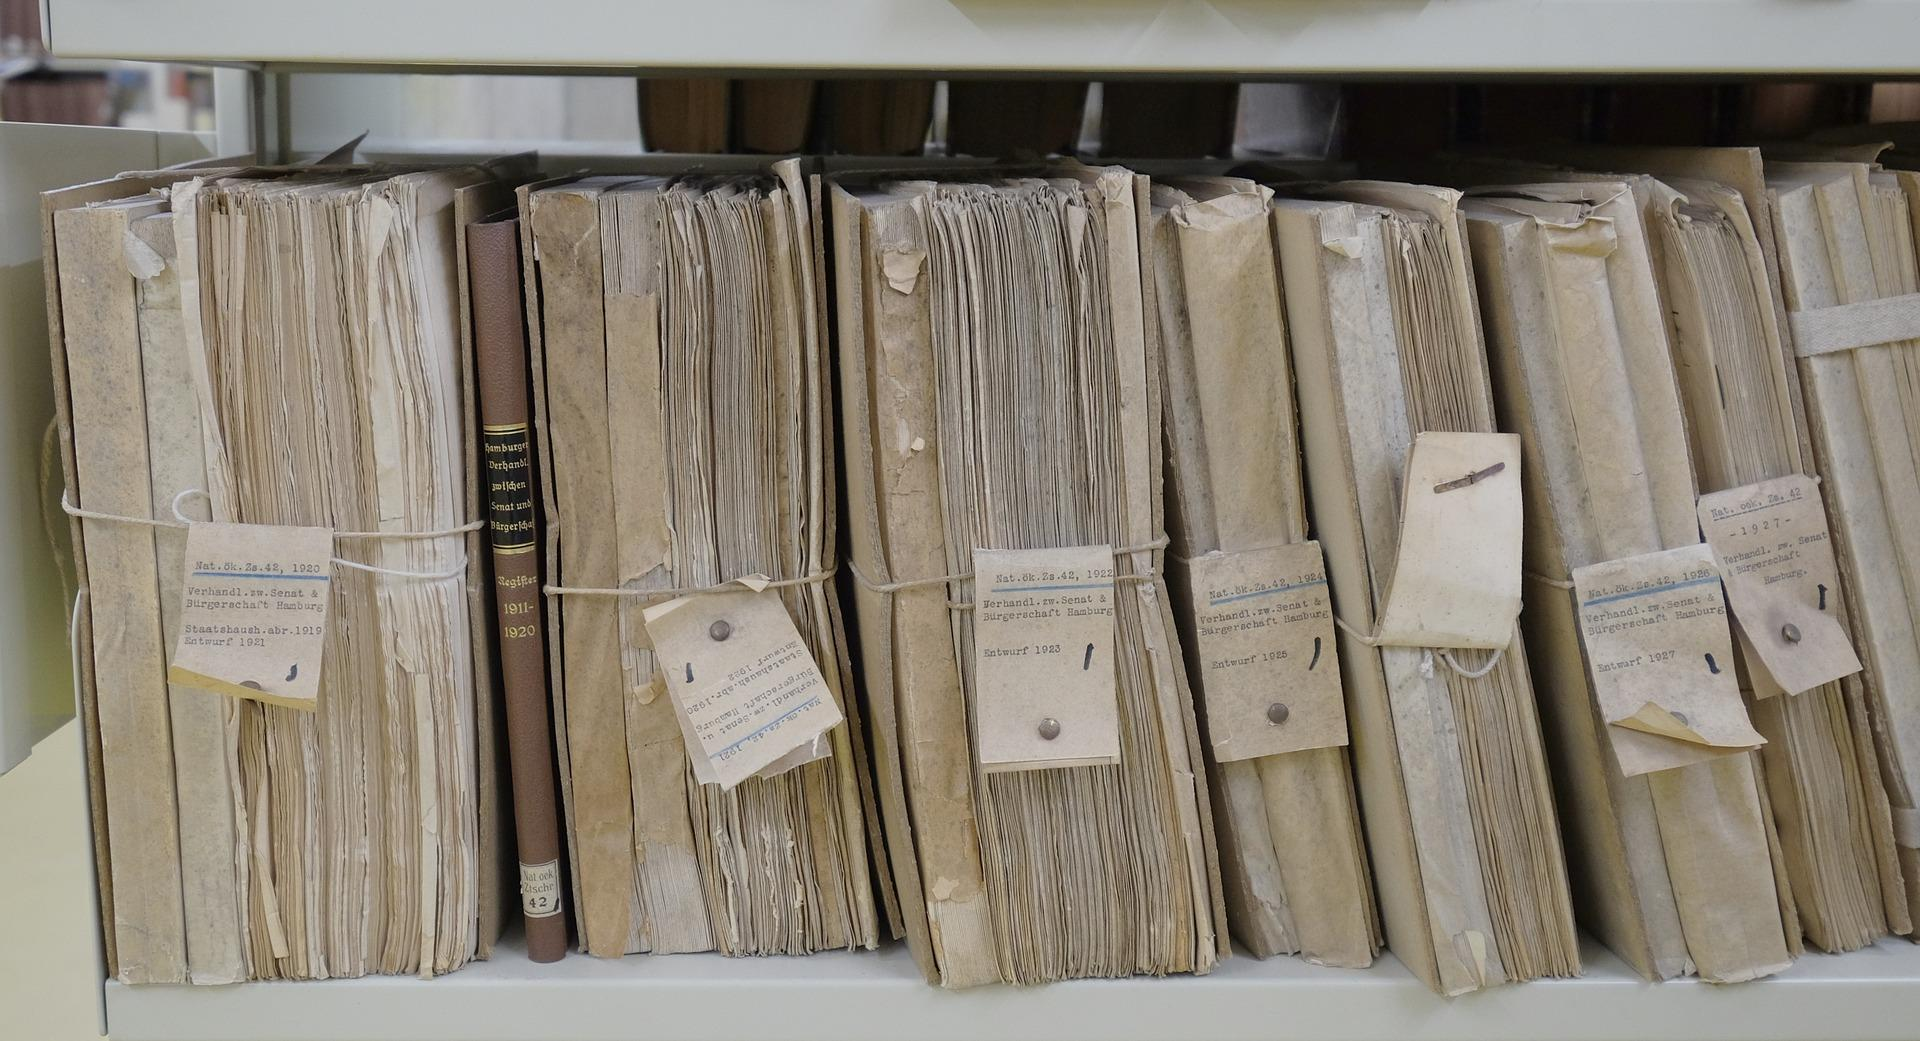 Several filing folders are placed side by side vertically. They have several papers stuffed into them, with old labels around the folder itself.